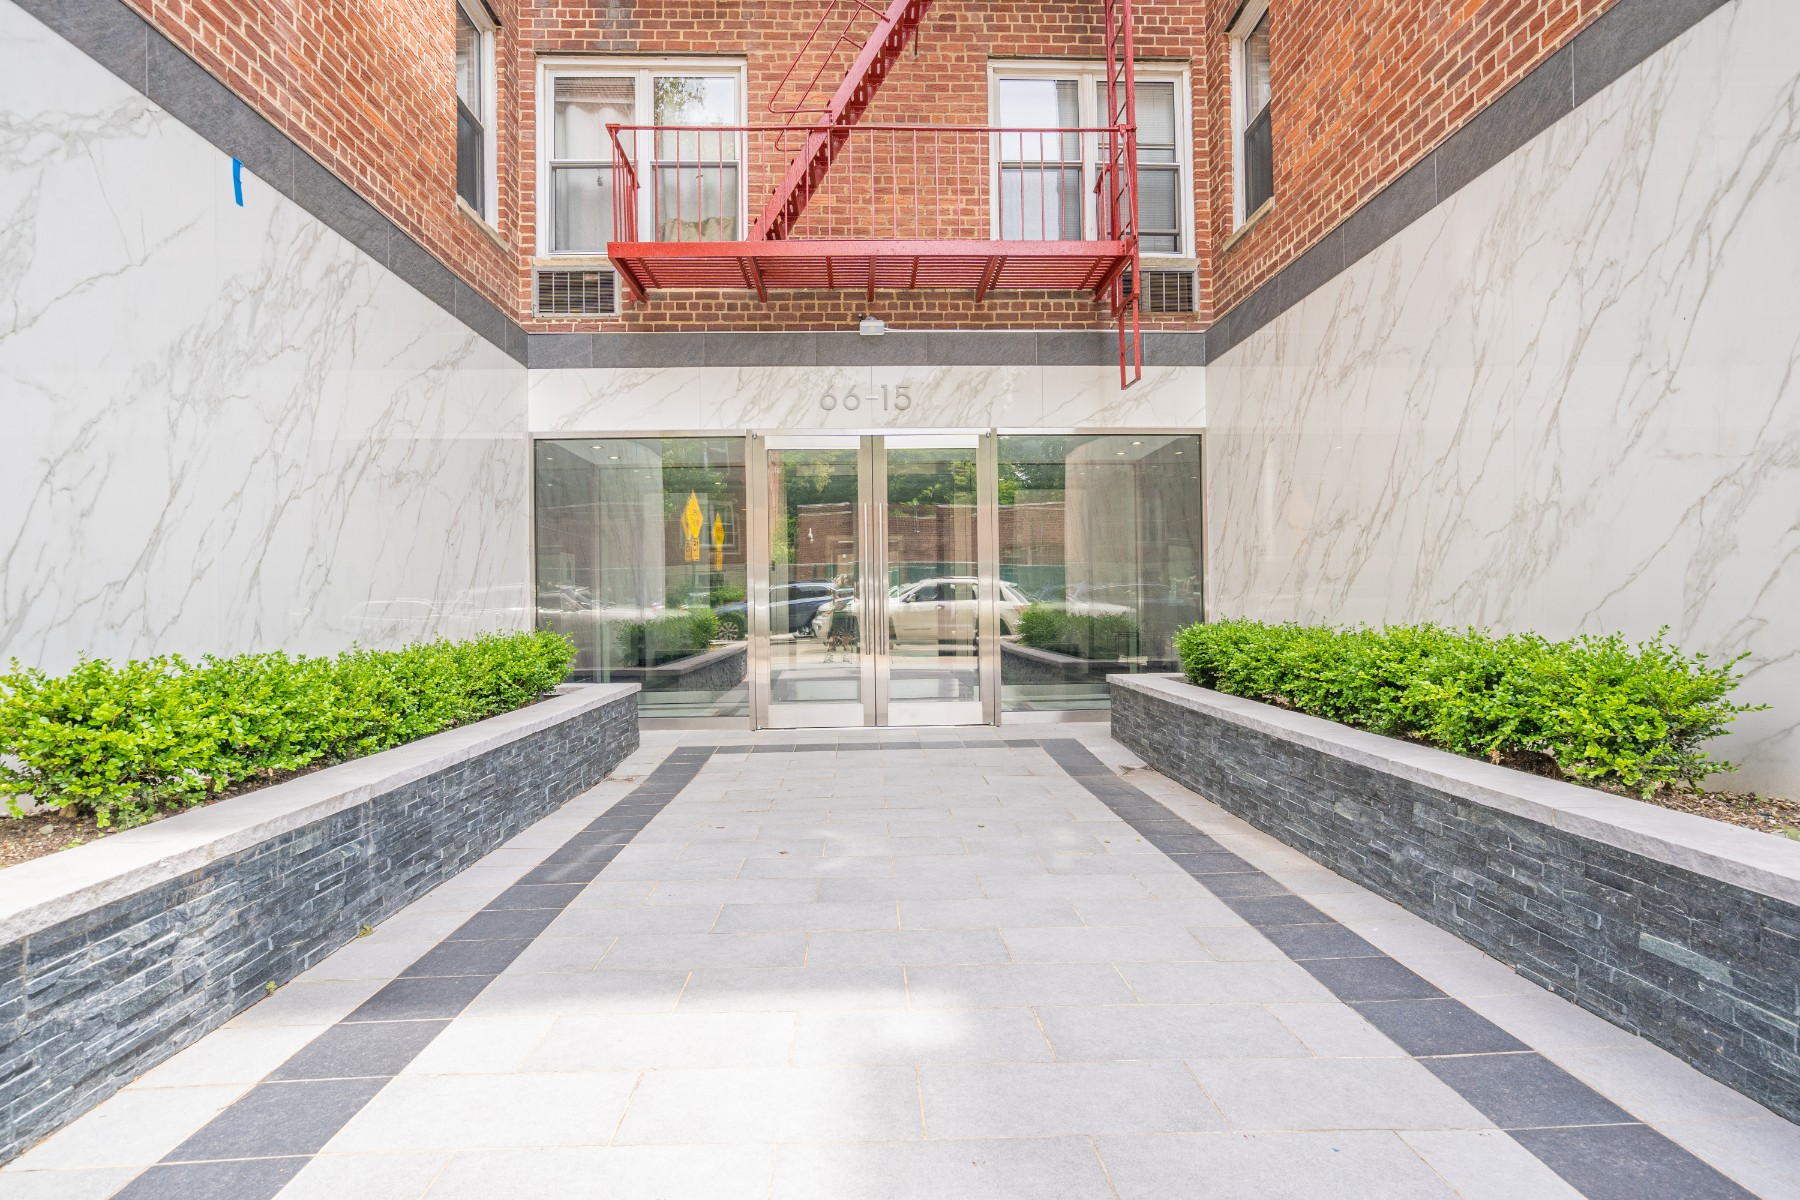 15_Building Entry_1